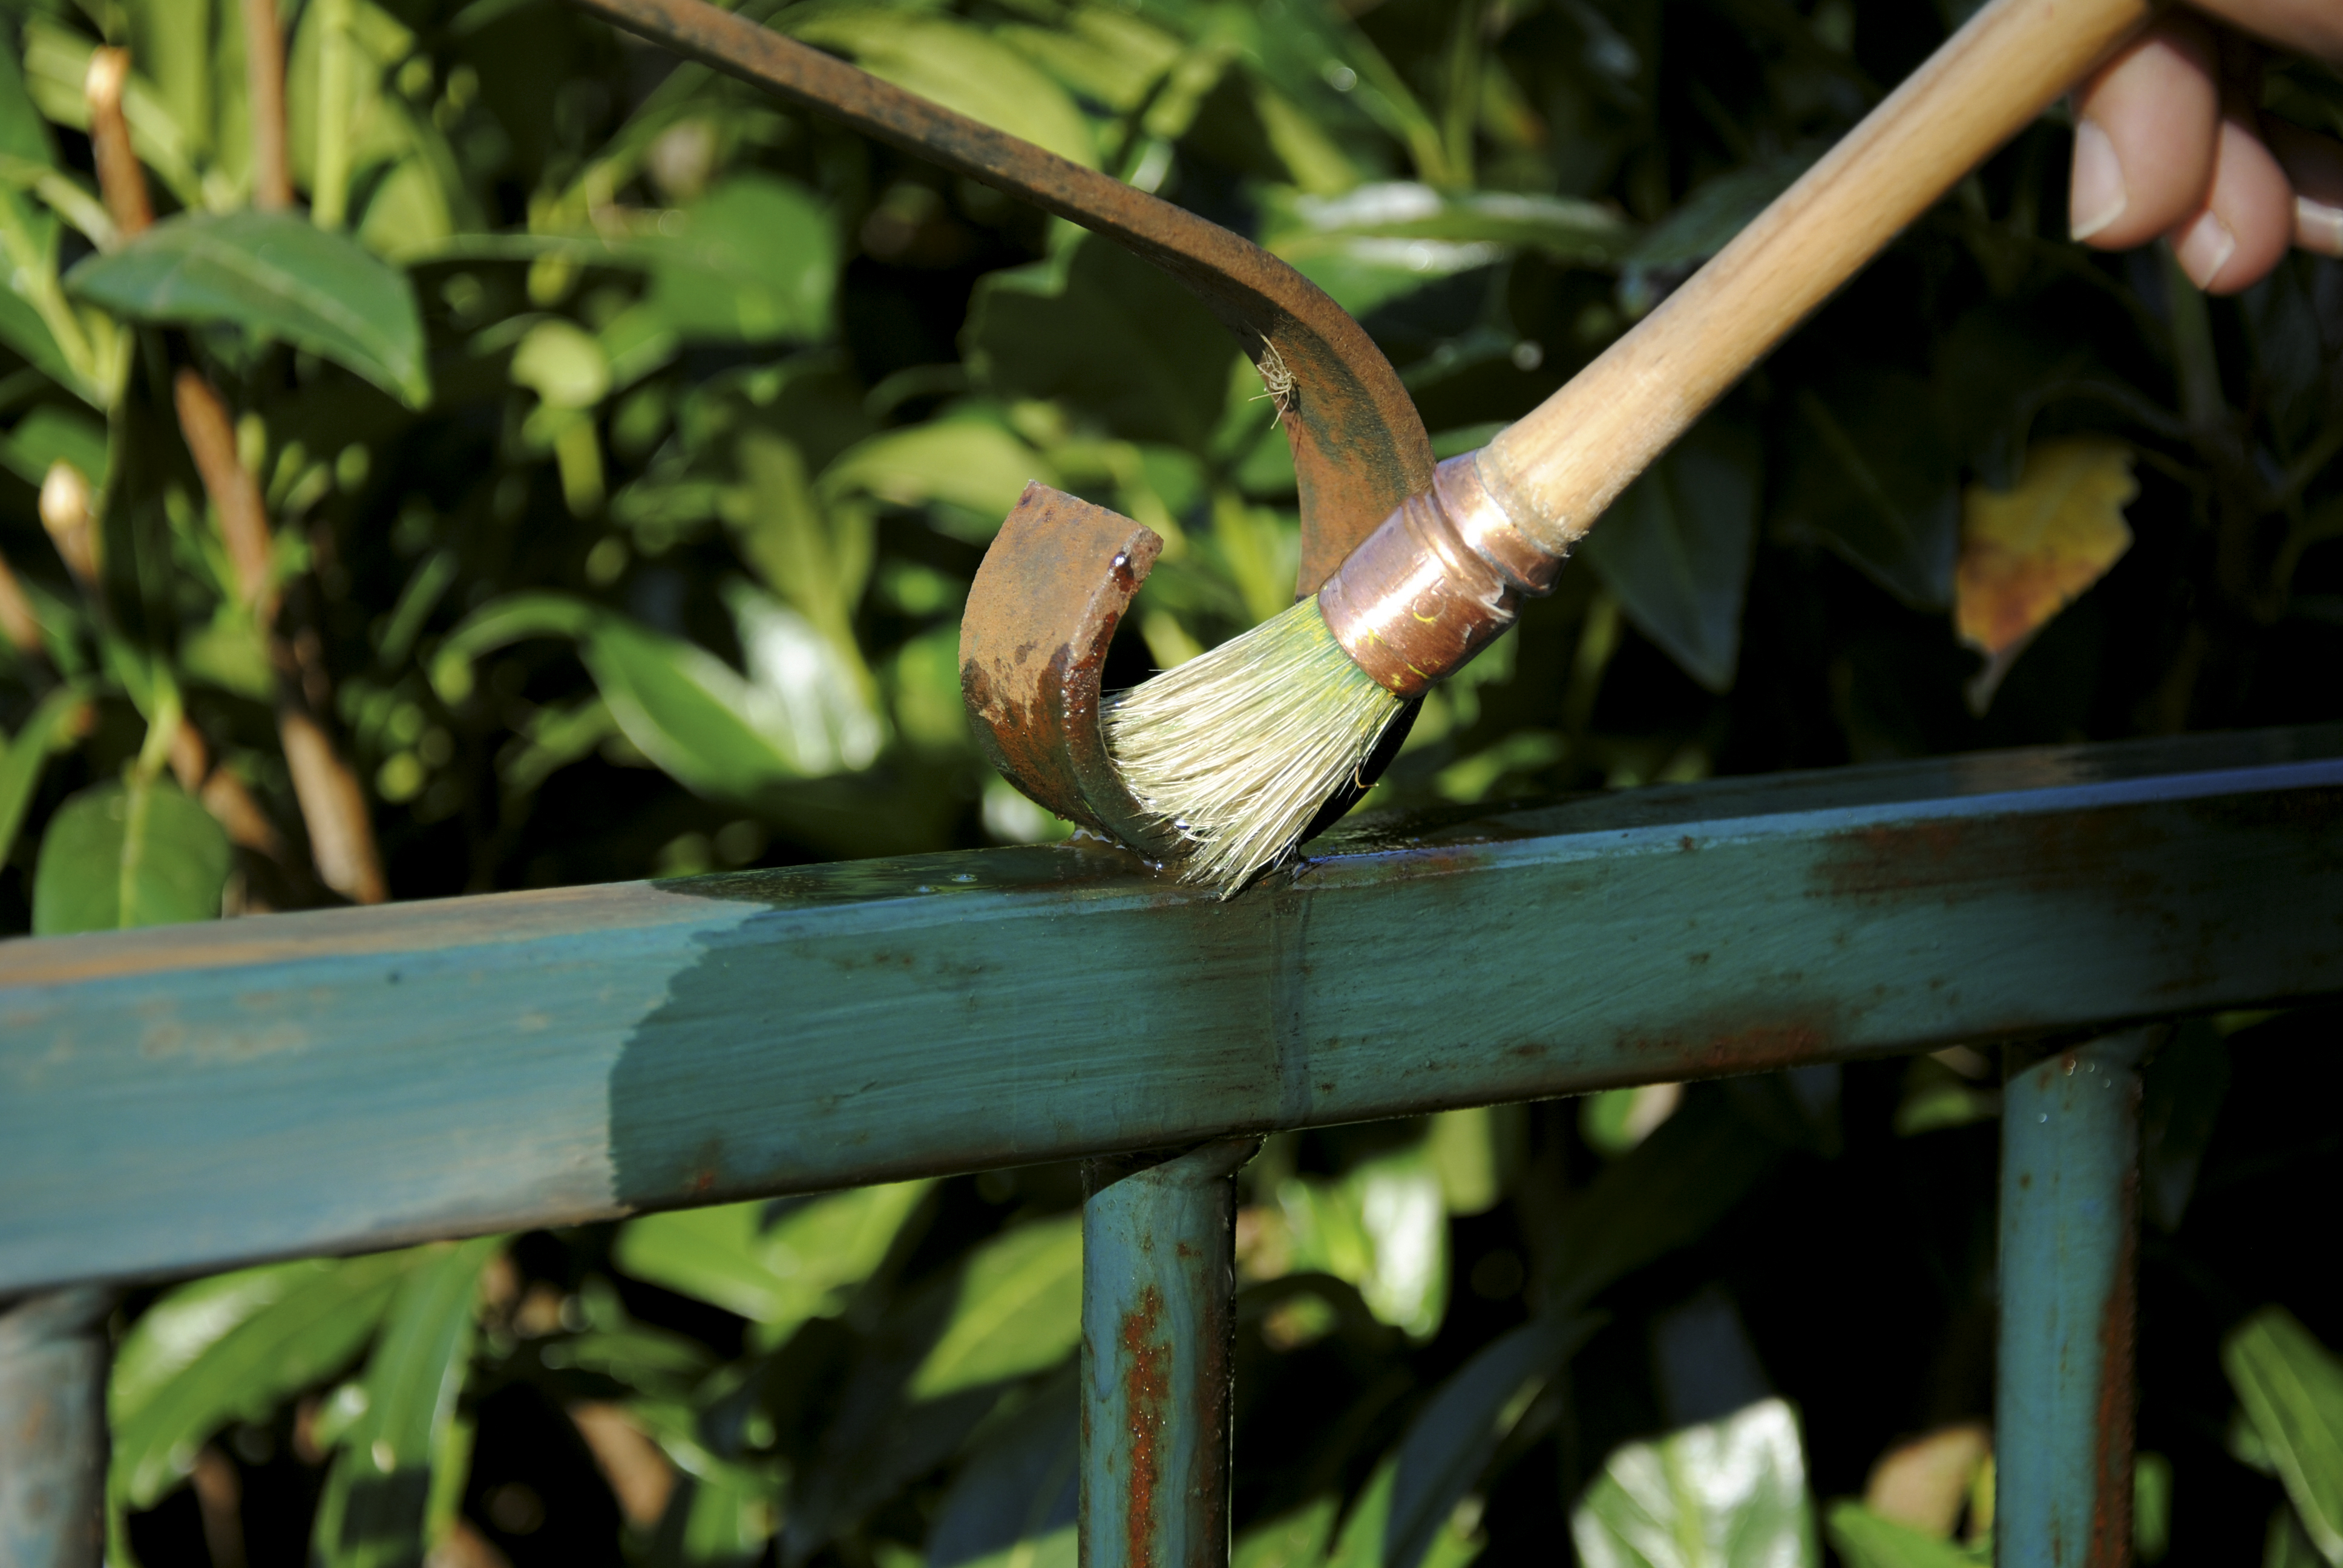 Owatrol Oil being applied to a rusted metal gate with a brush